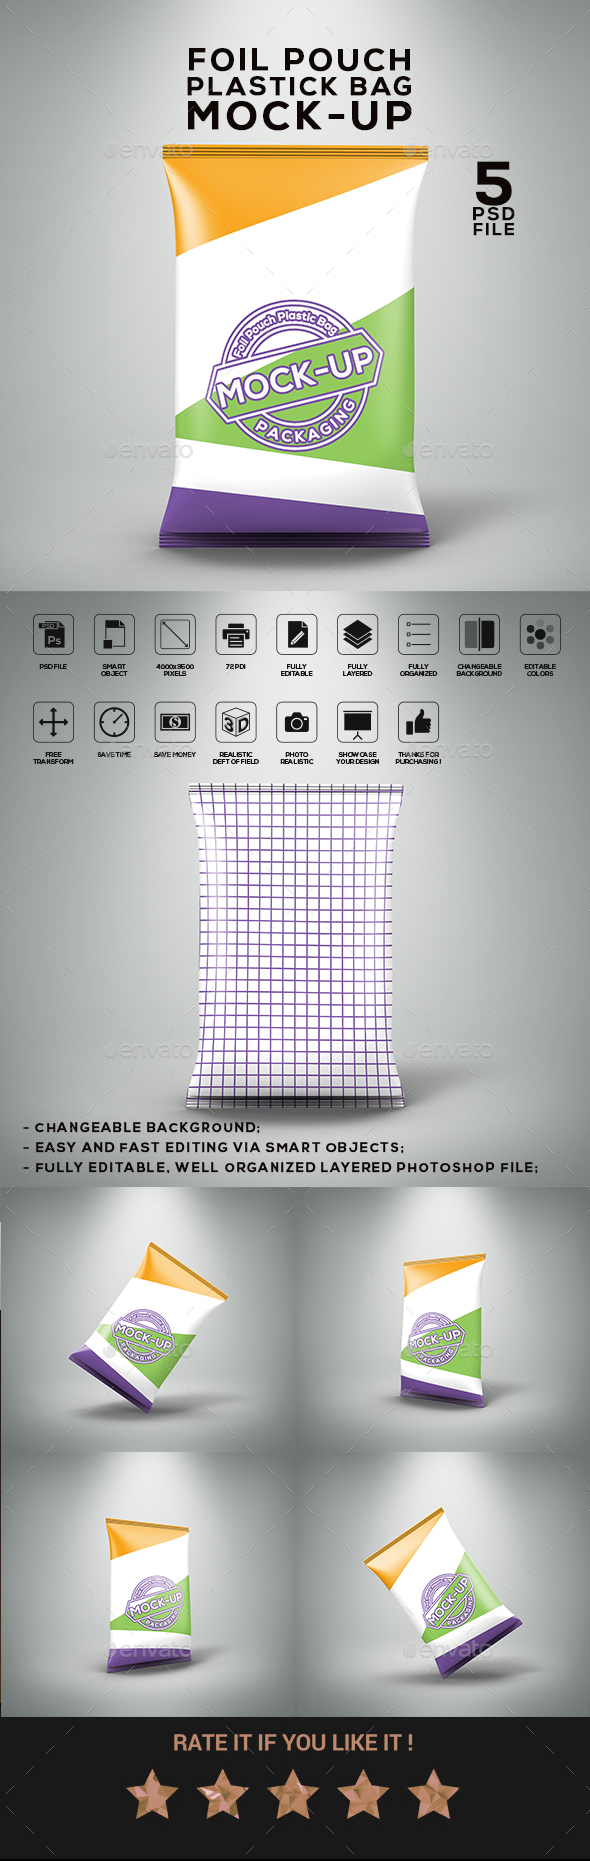 GraphicRiver Foil Pouch Plastic Bag Mock-Up 21043618